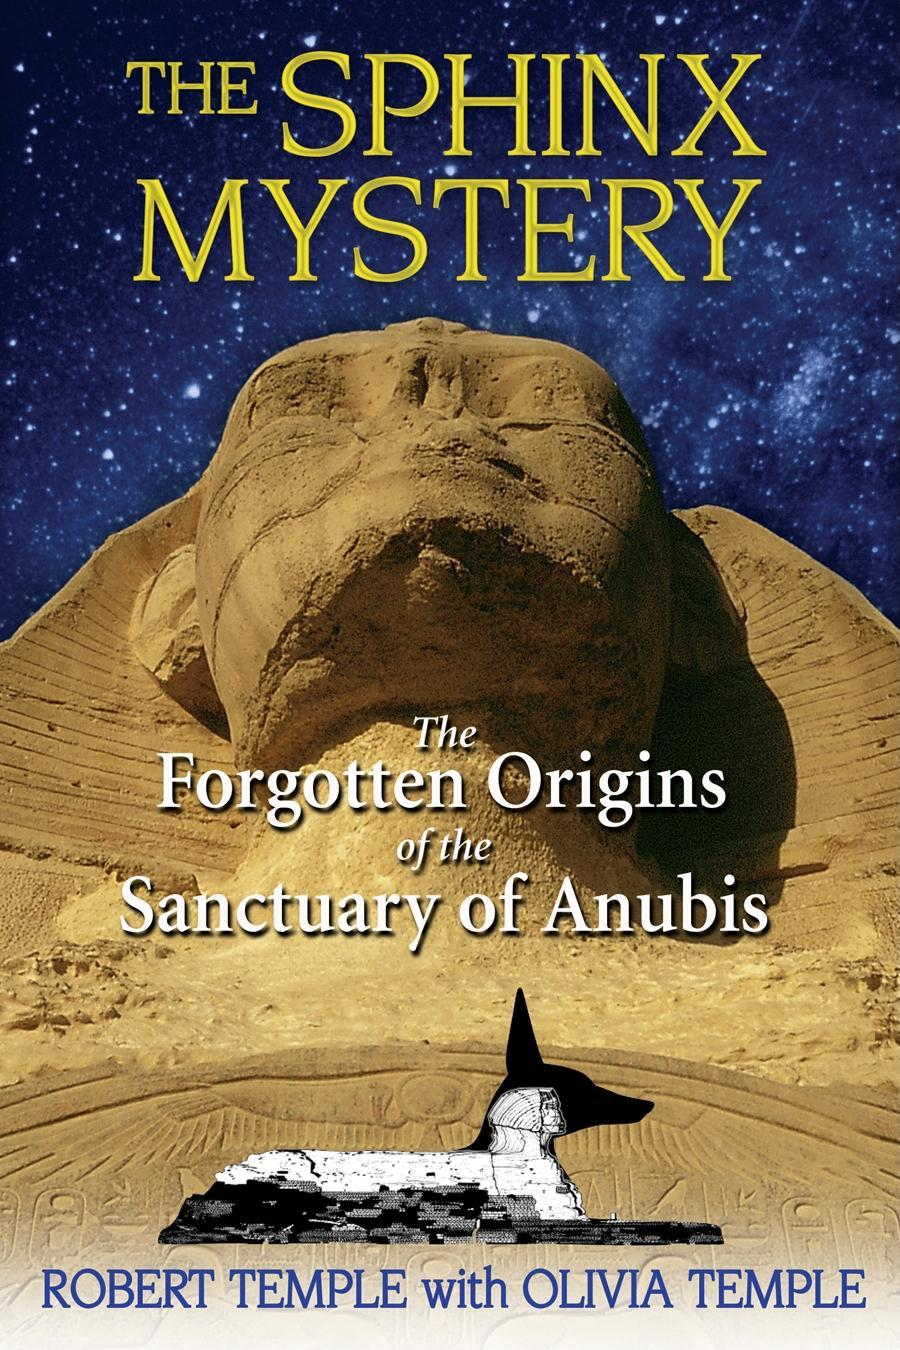 The Sphinx Mystery: The Forgotten Origins of the Sanctuary of Anubis EB9781594778841